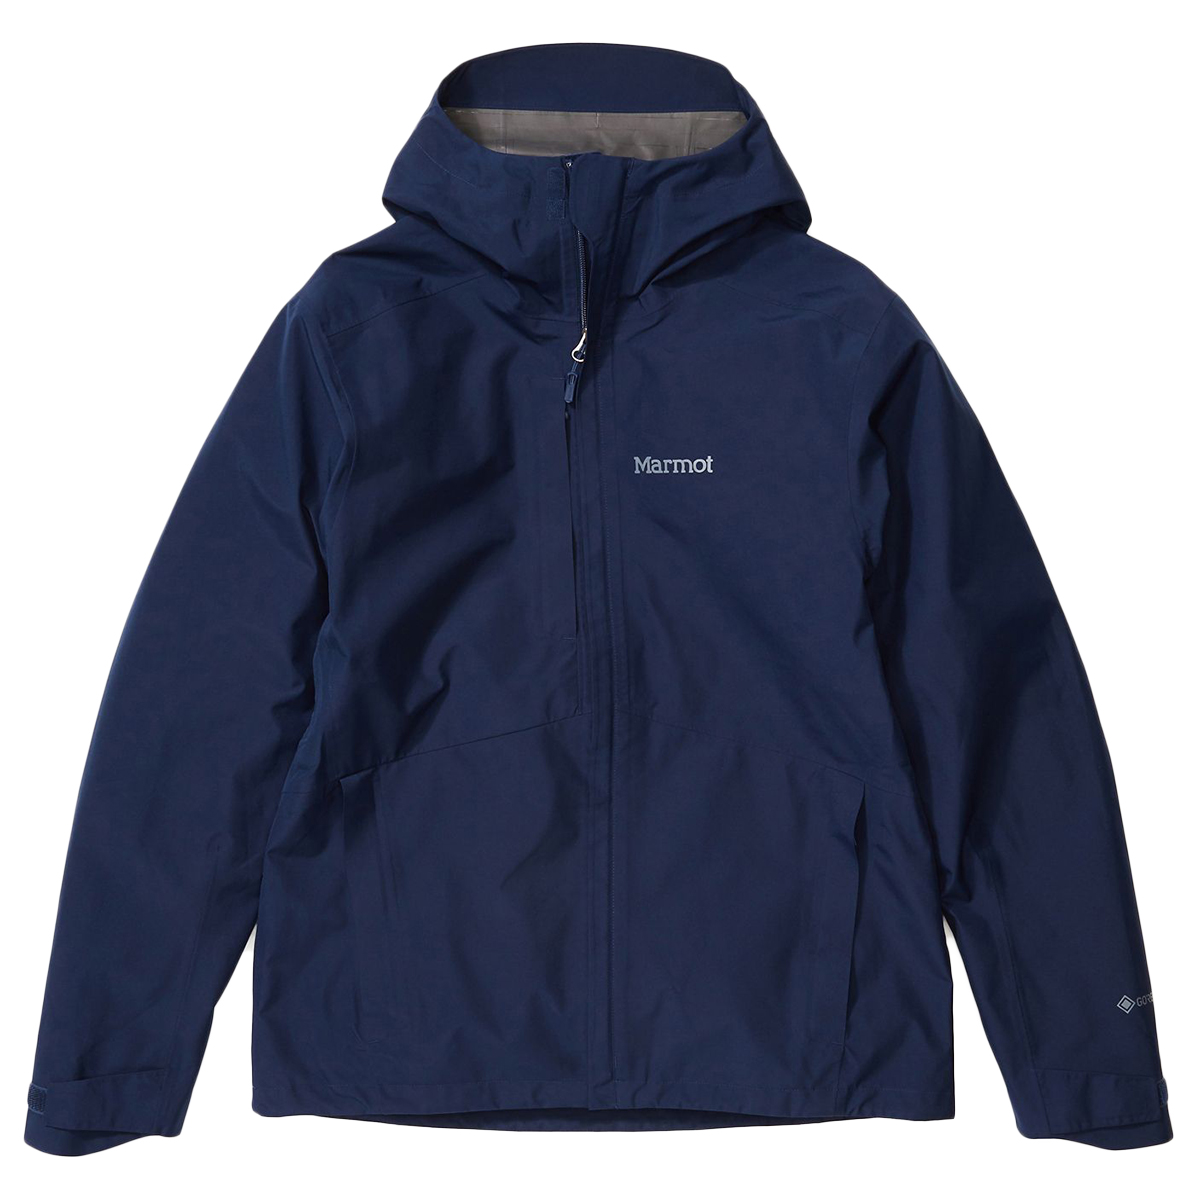 Marmot Men's Minimalist Jacket - Blue, XXL